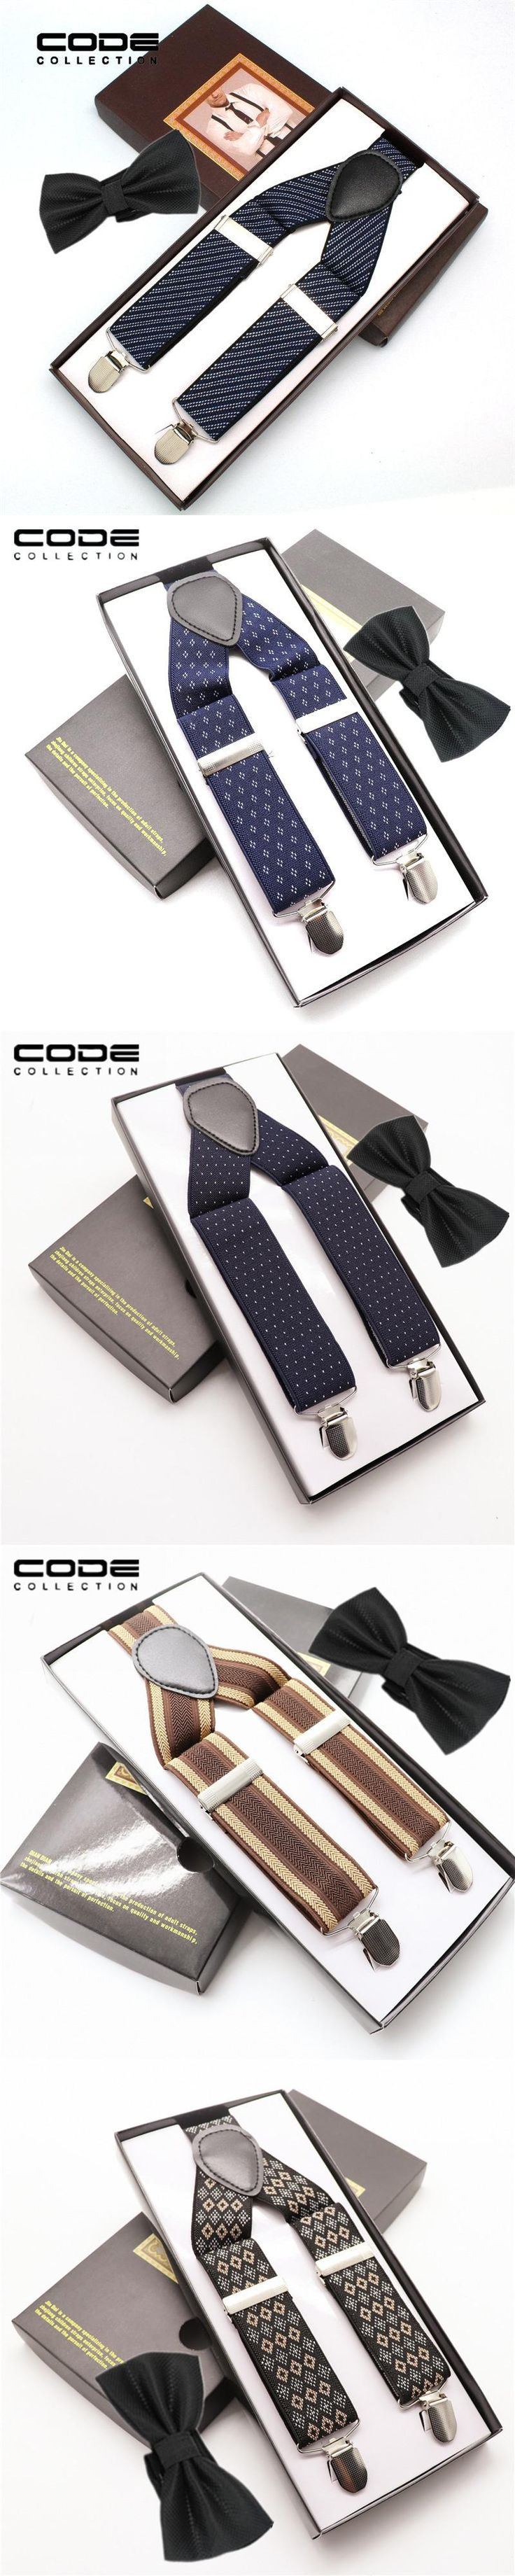 High-grade Bow Tie Suspenders Set Gentleman Elegant Stainless Steel Clip Cotton Jacquard Belt Man Groom's Trousers Accessories